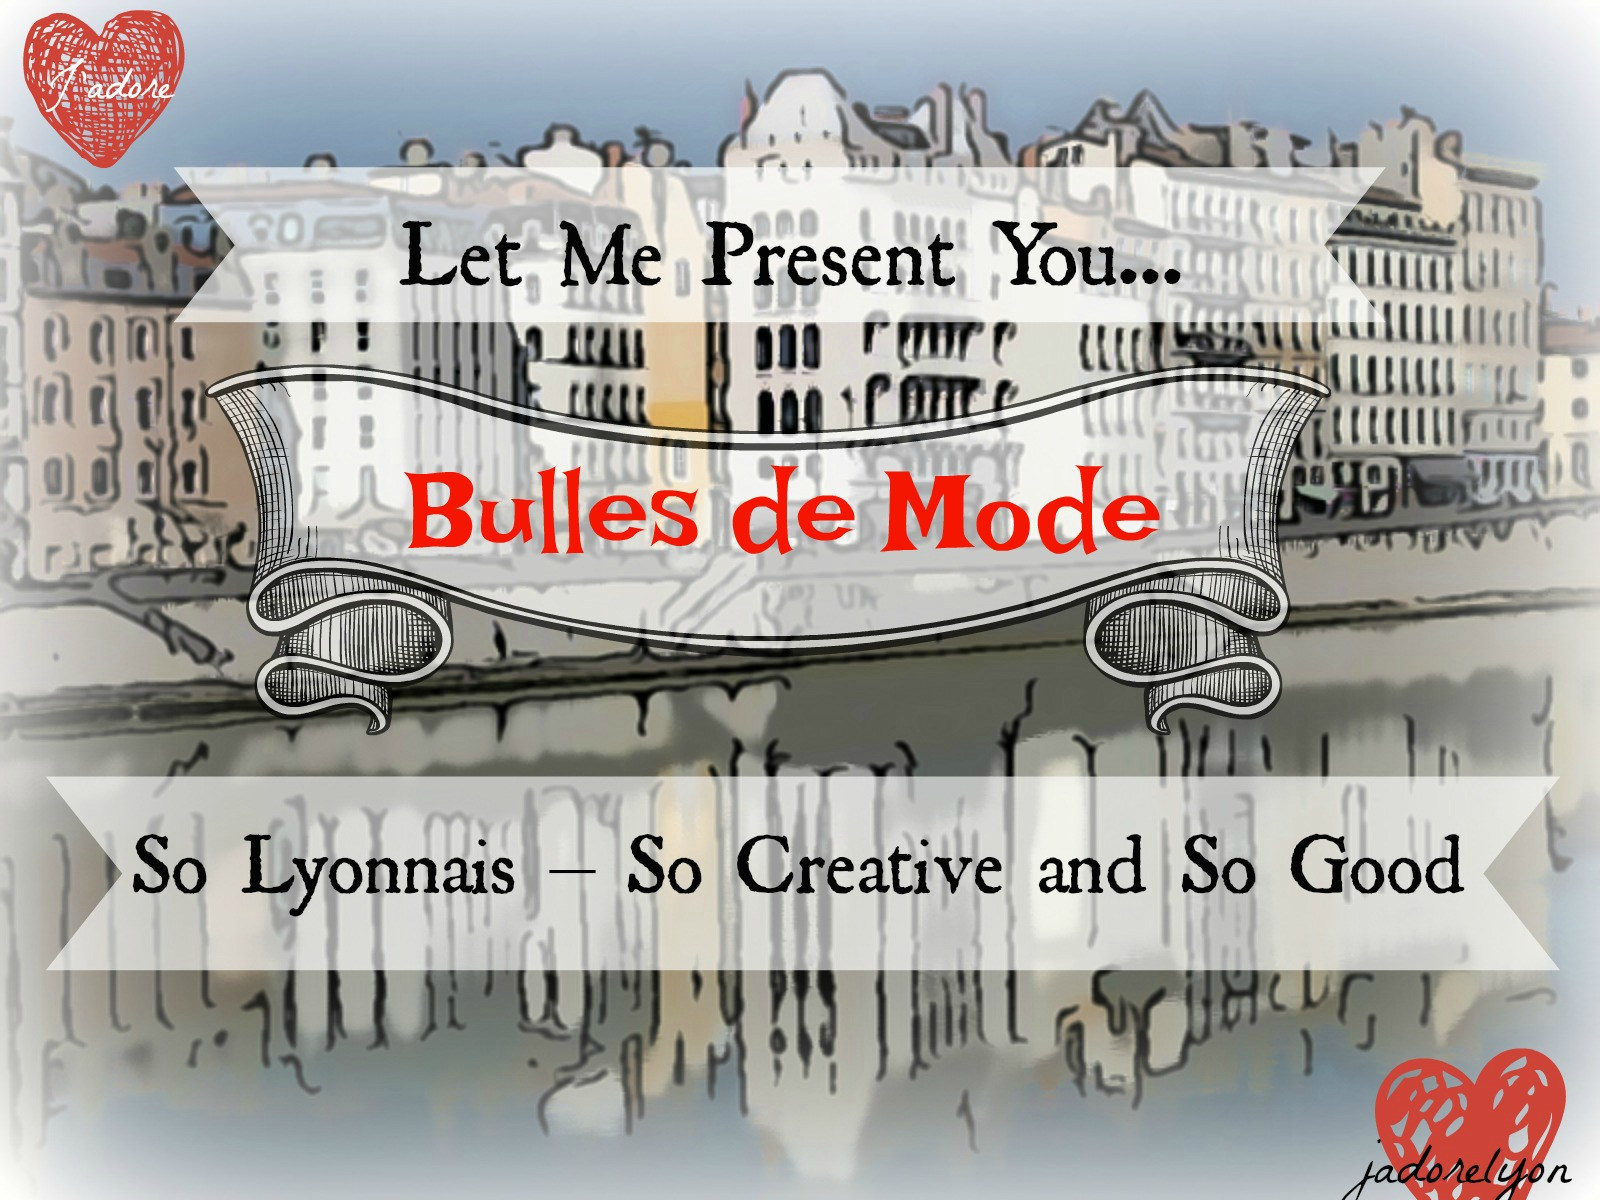 Let me present you - Bulles de Mode